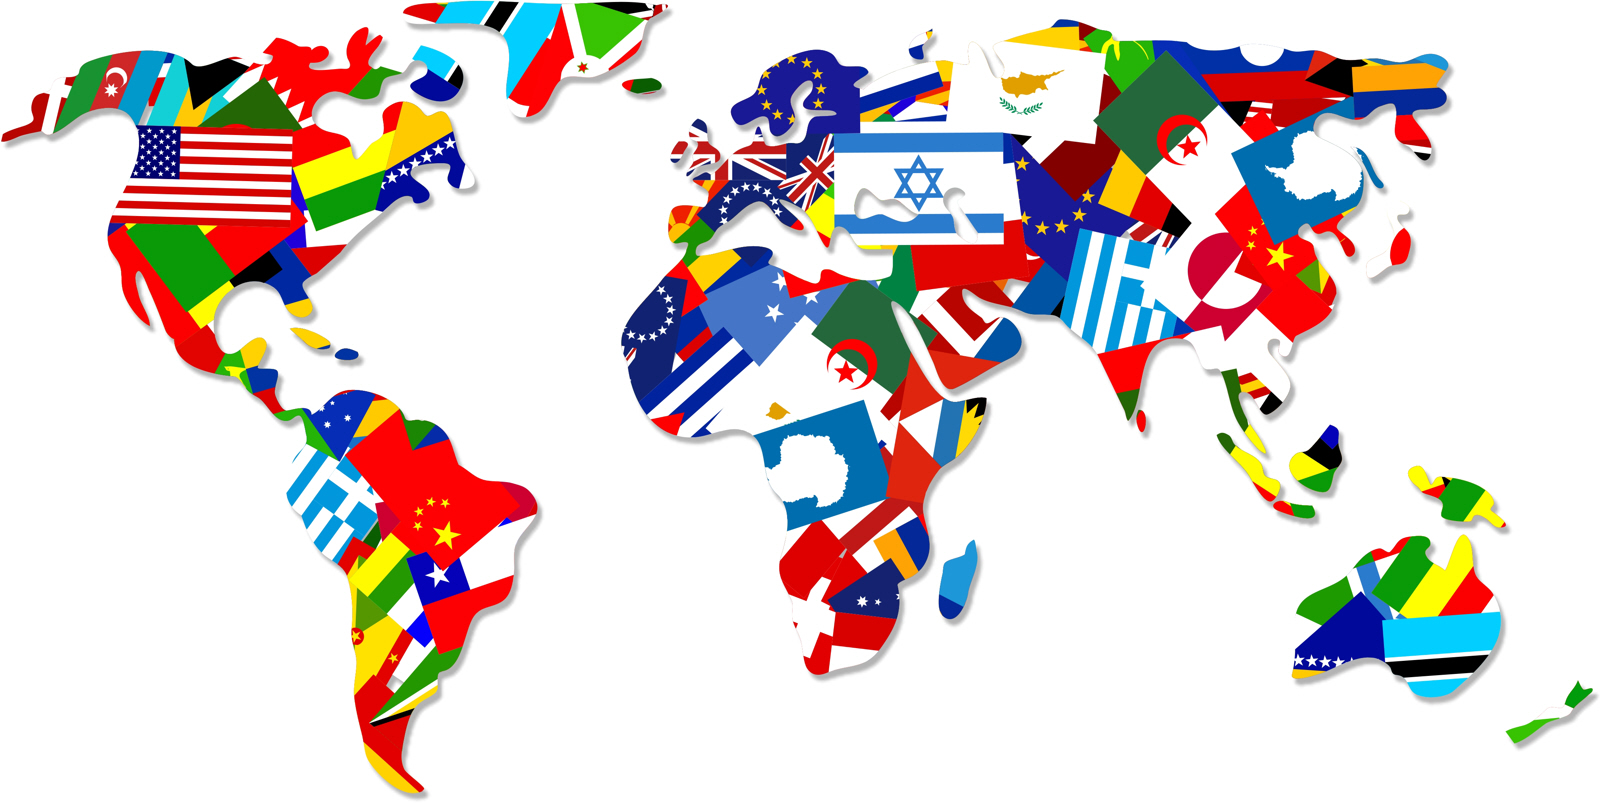 Free photo: World Flag Map - Atlas, Countries, Flags - Free ... on global flags, world map banner, world map with countries, world map countries of the world, us state flags, world map europe, world map engraving, middle east flags, world map apparel, african flags, world map wallets, german flags, north american flags, world map us states, globe flags, country flags, world map wall graphics, russia flags, world map bookmarks, usa maps flags,